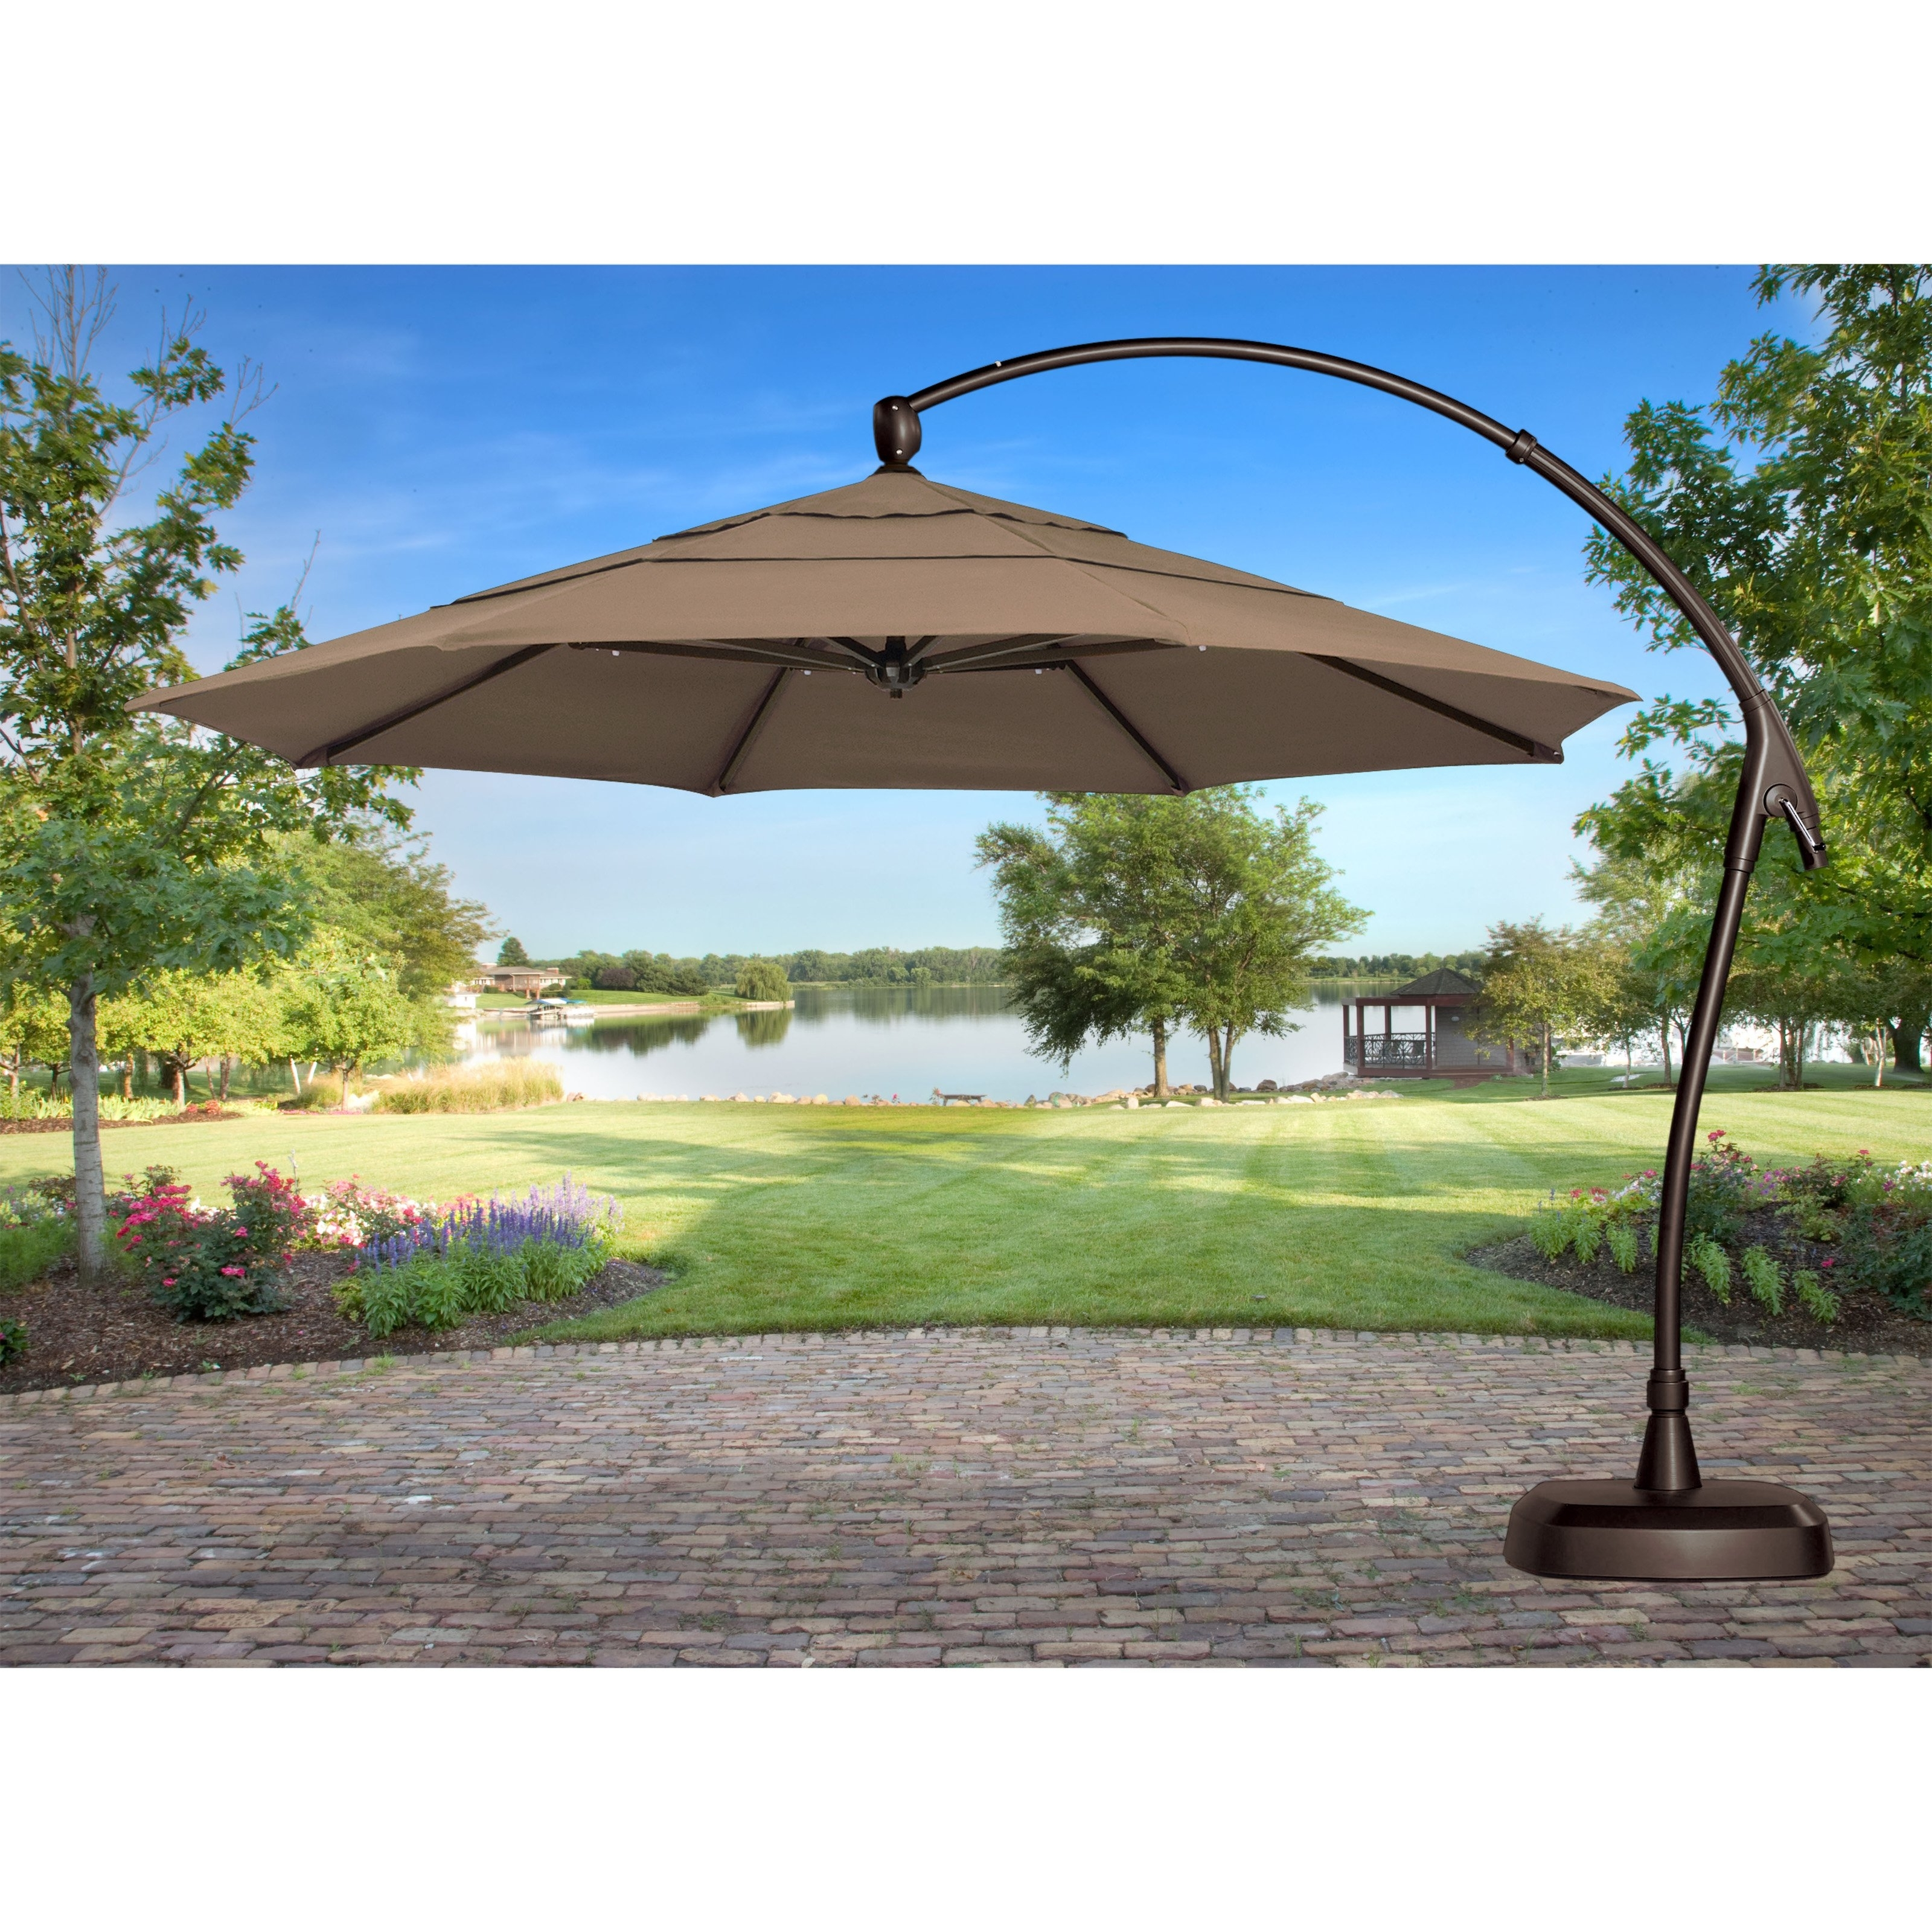 Best And Newest Stylish And Convenient Cantilever Patio Umbrella – Carehomedecor Regarding Cantilever Patio Umbrellas (View 5 of 20)